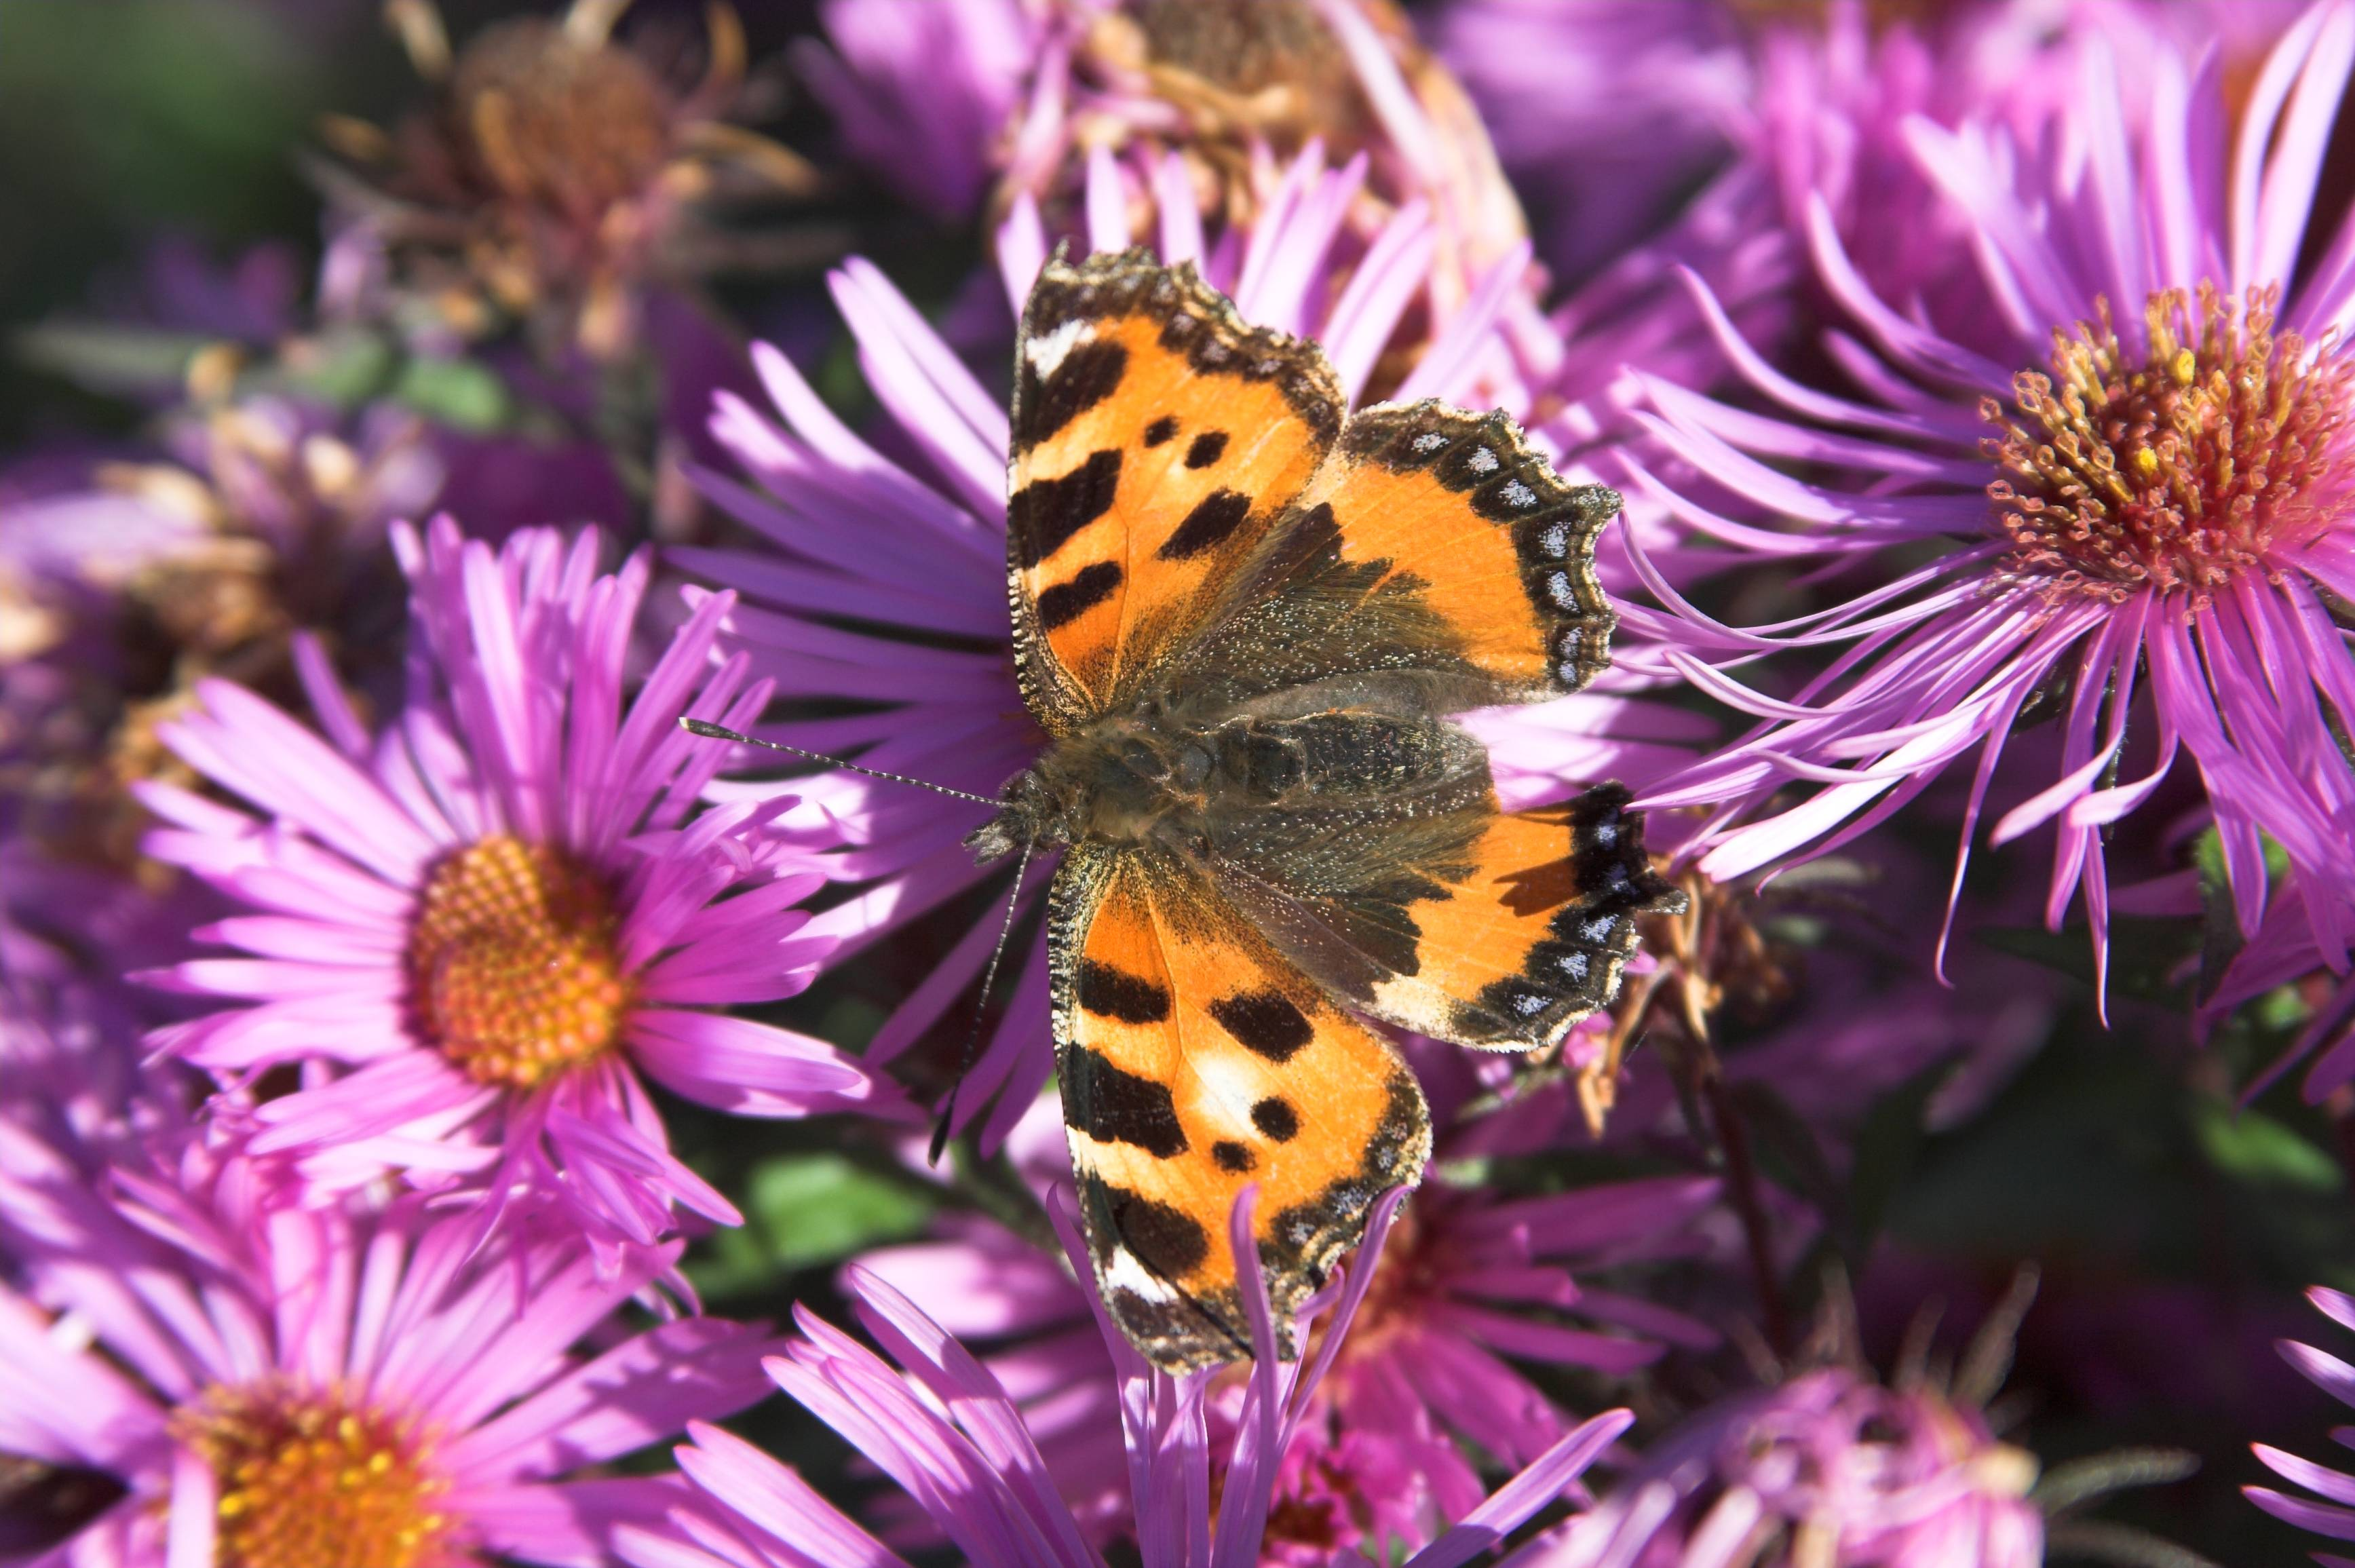 Small Tortoiseshell Butterfly, Small Tortoiseshell Butterfly Wallpapers